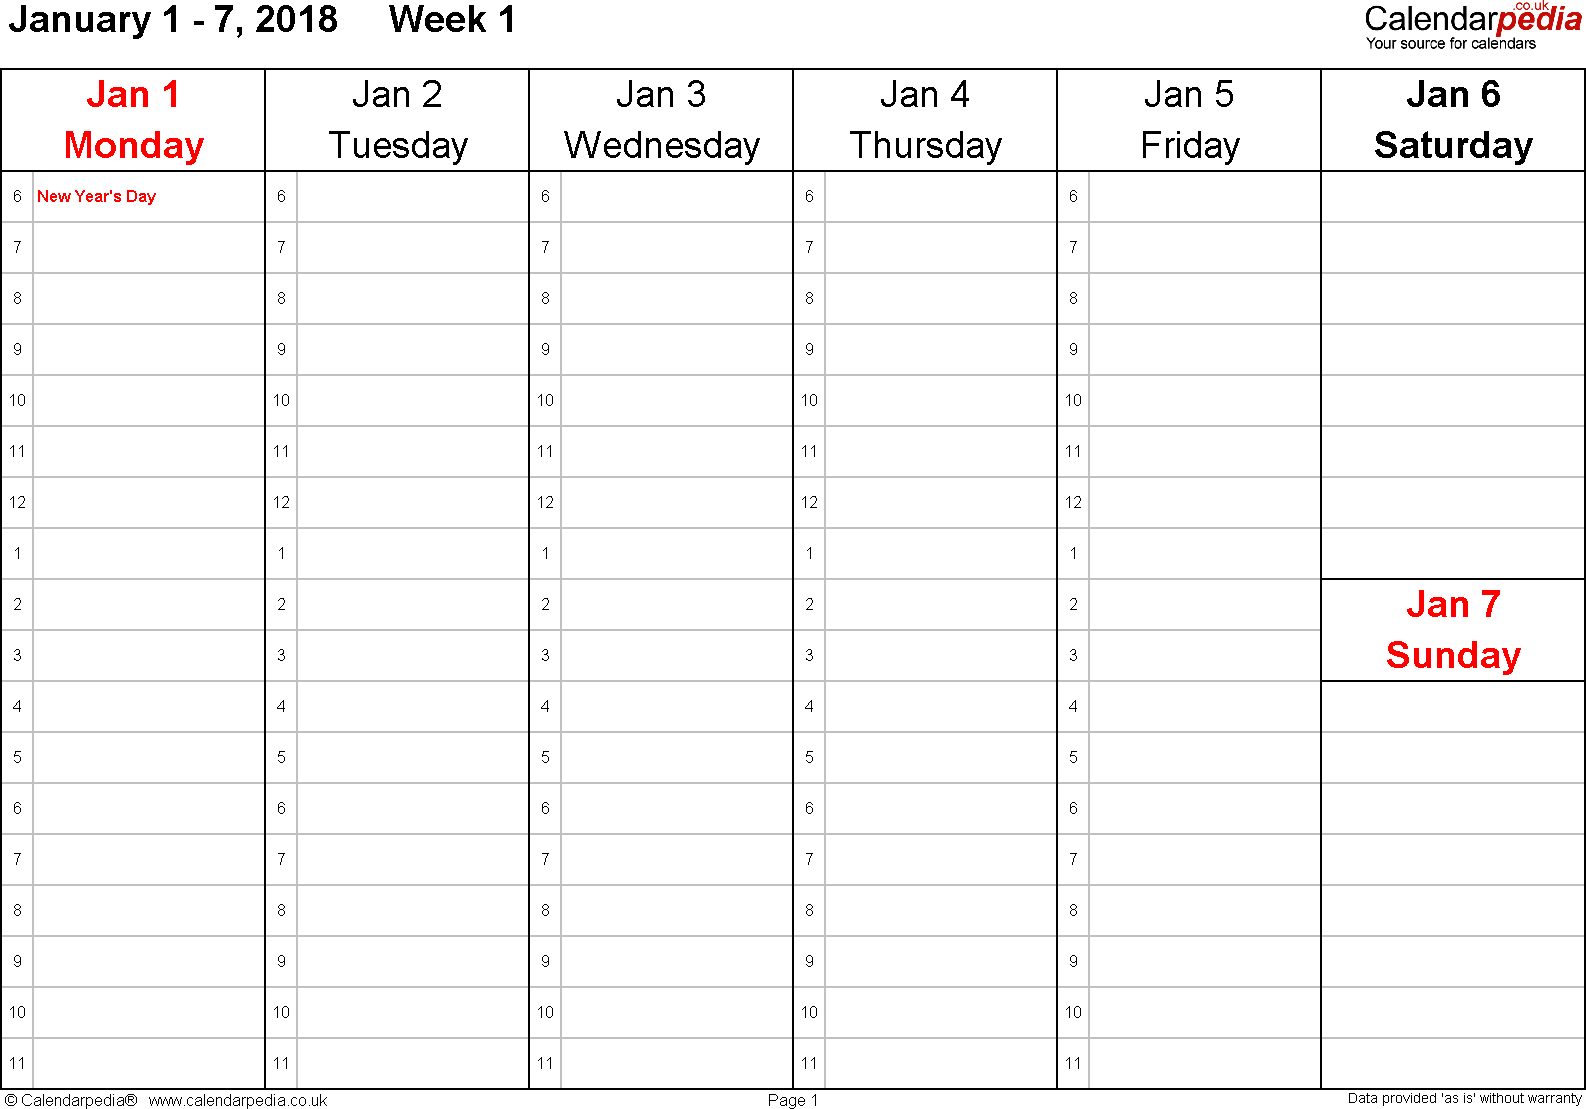 Download Word template 4: Weekly calendar 2018, landscape orientation, 53 pages (1 calendar week on 1 page), time management layout (1 hour steps), Saturday & Sunday share one column